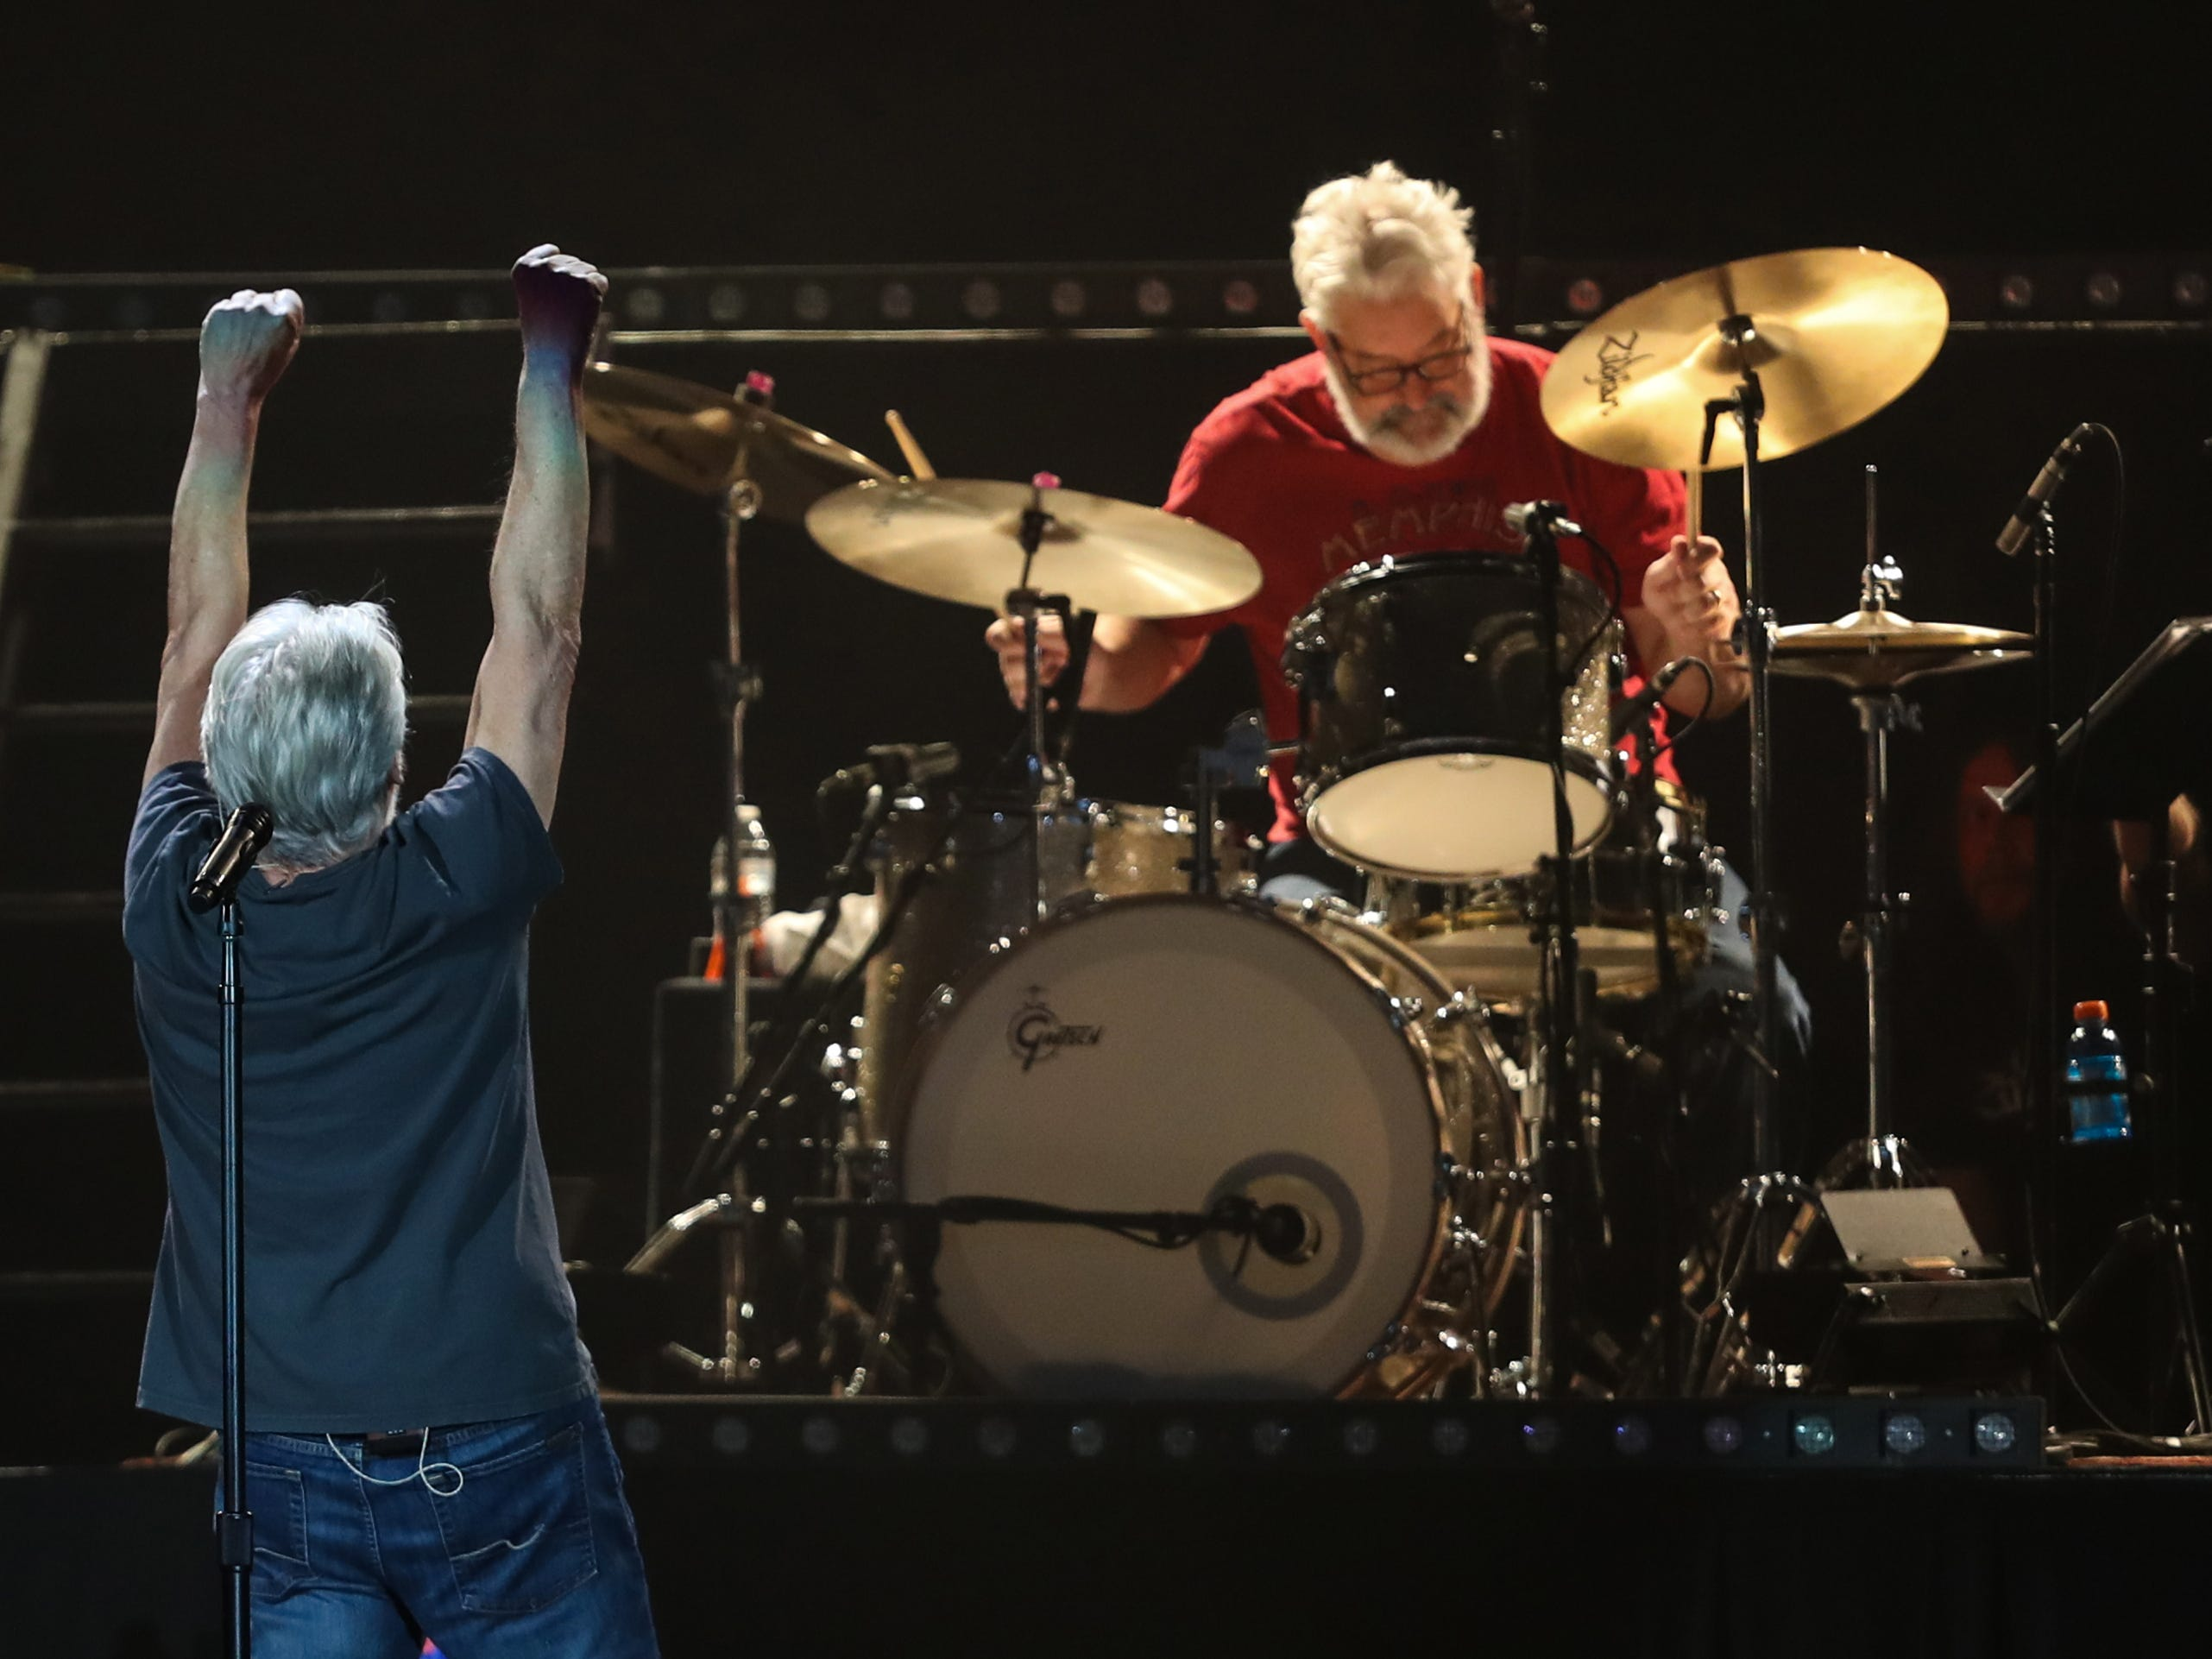 Bob Seger and the Silver Bullet Band play Wells Fargo Arena in Des Moines, Iowa on Nov. 27, 2018.